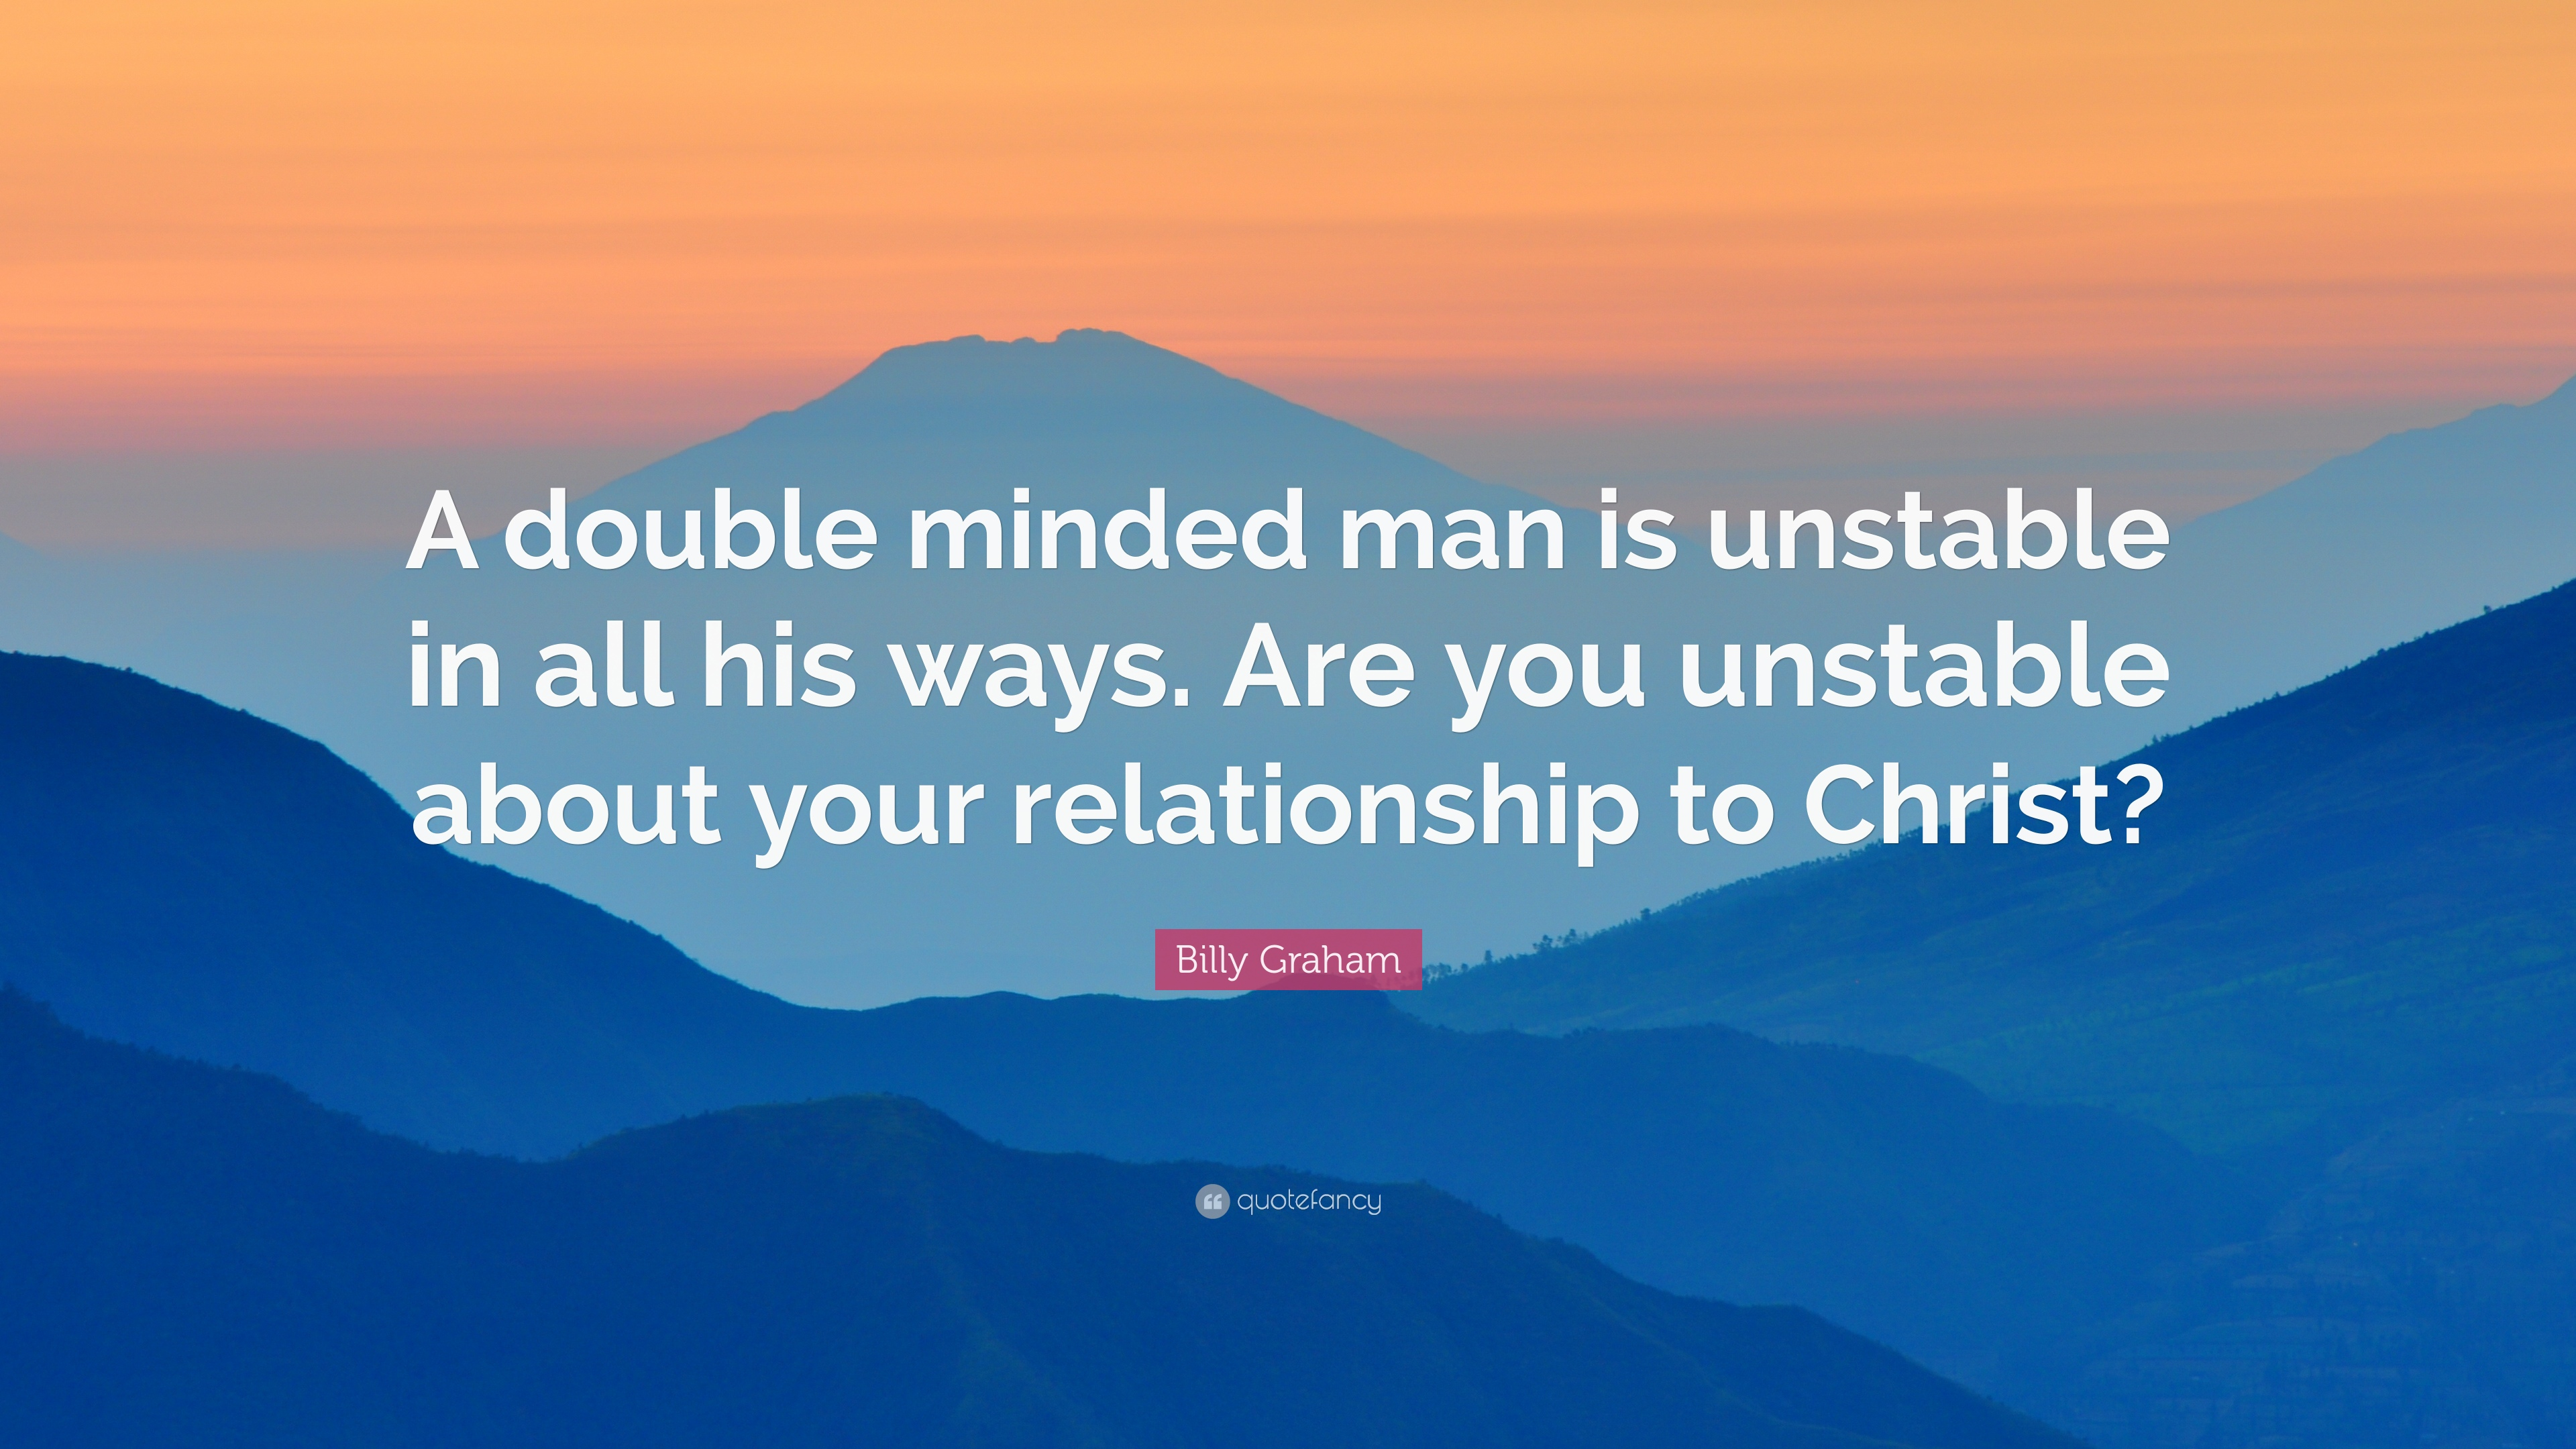 Billy Graham Quote: A double minded man is unstable in